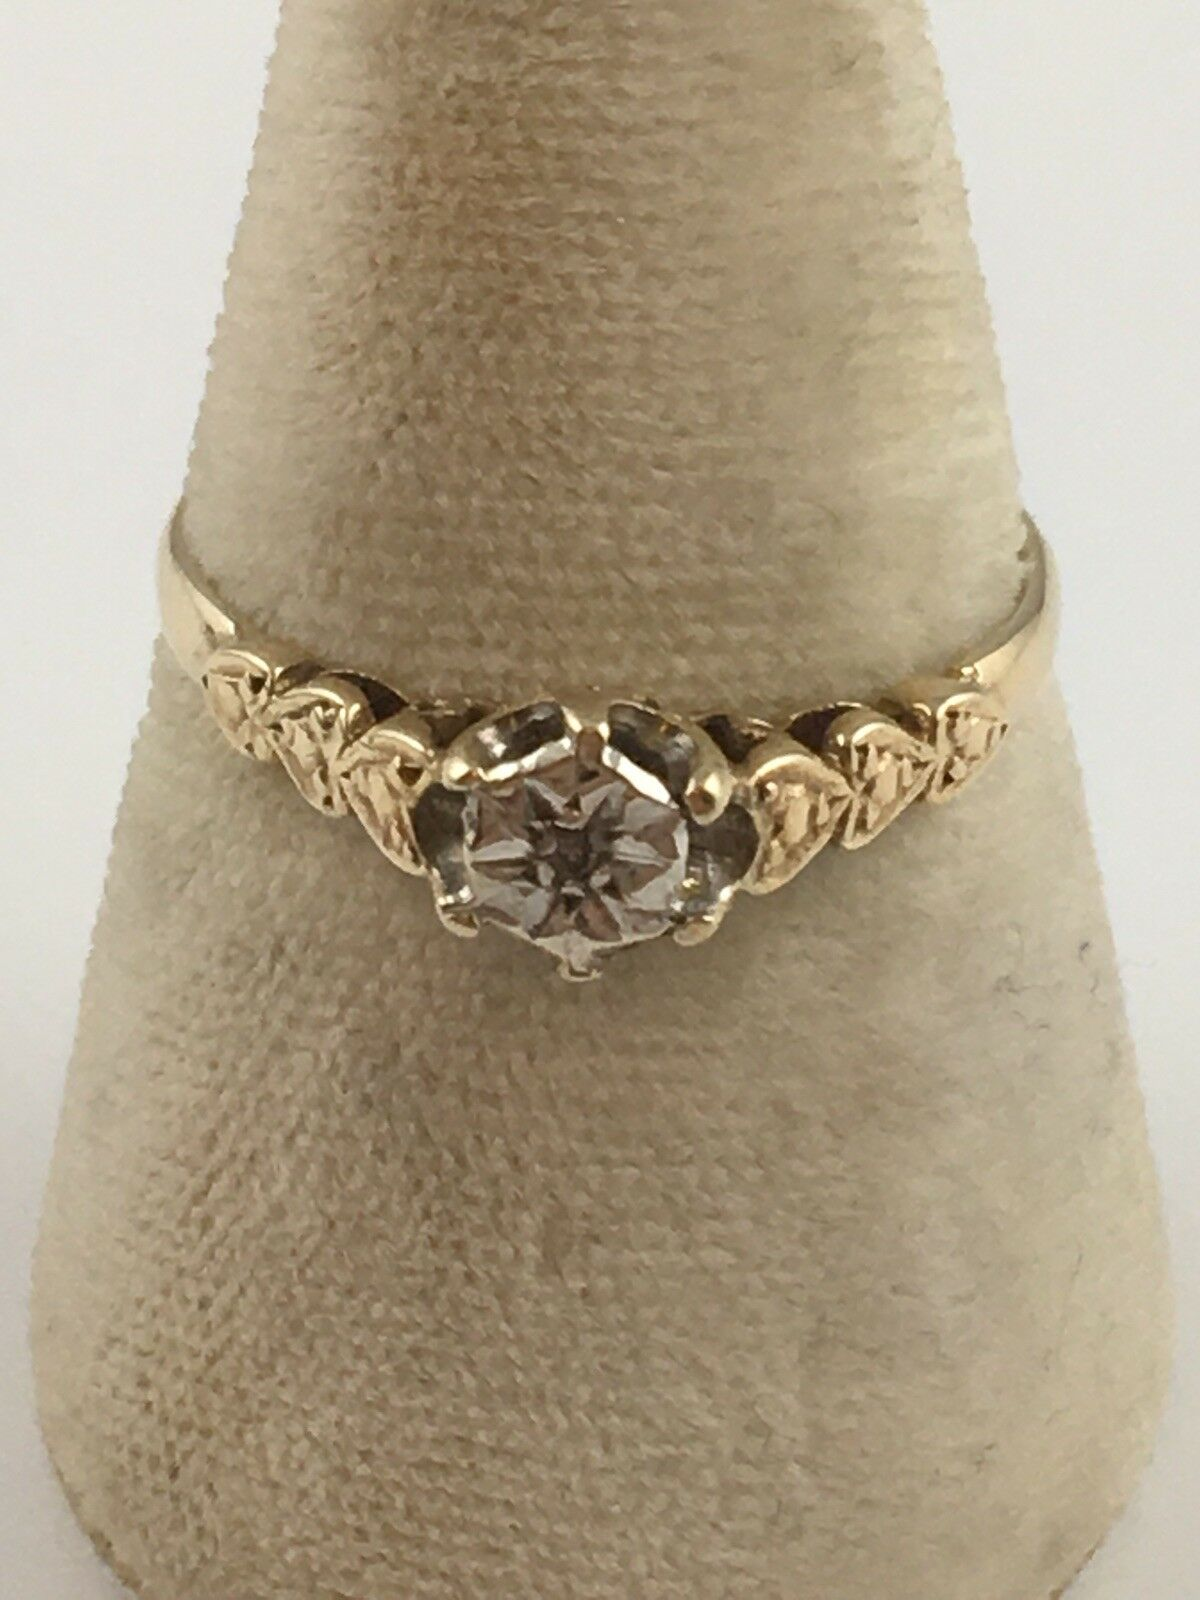 9ct gold Diamond Solitaire Ring. UK Size Q